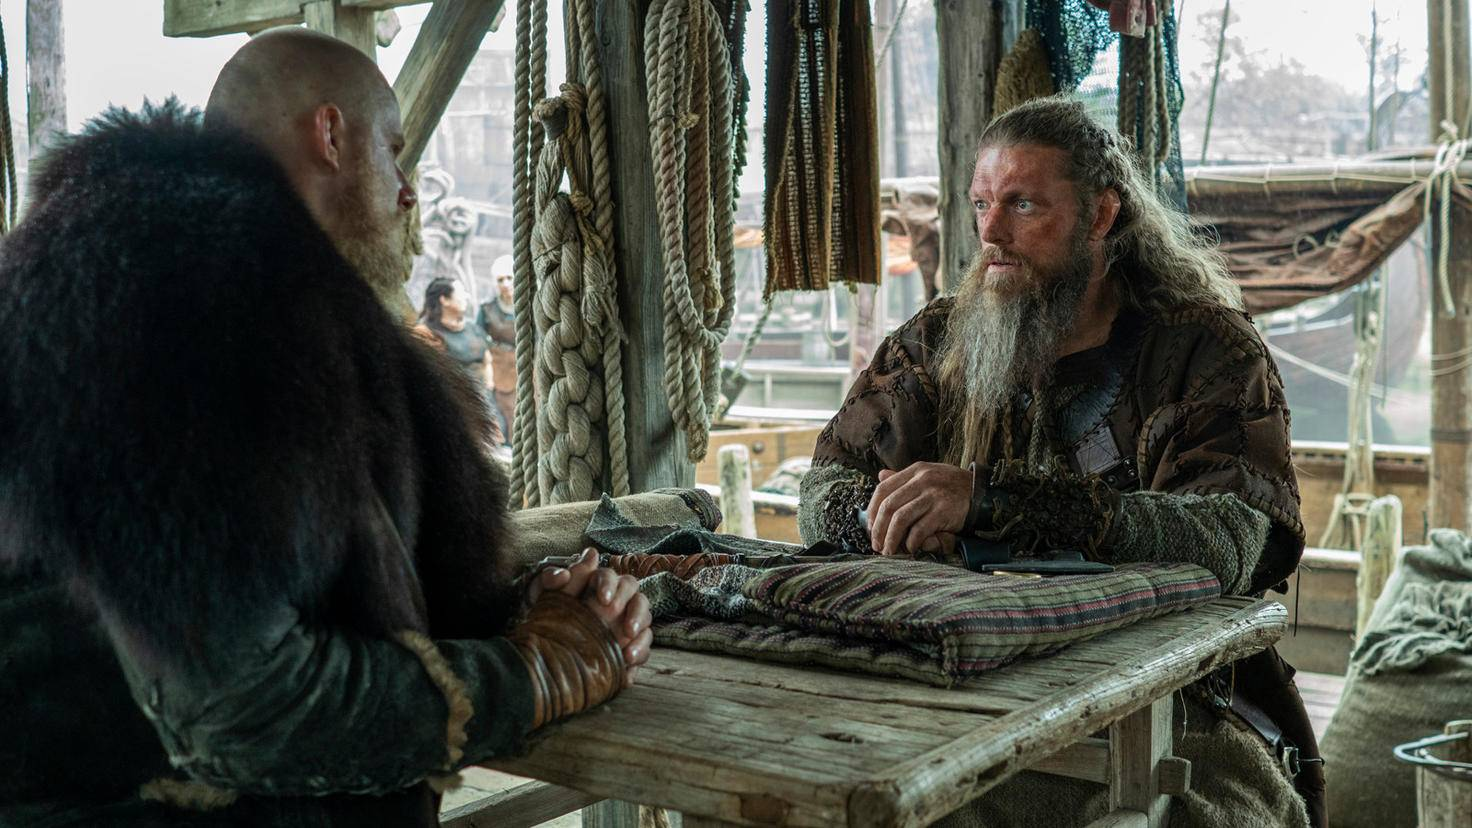 Bjorn und Kjetill in Vikings Staffel 6